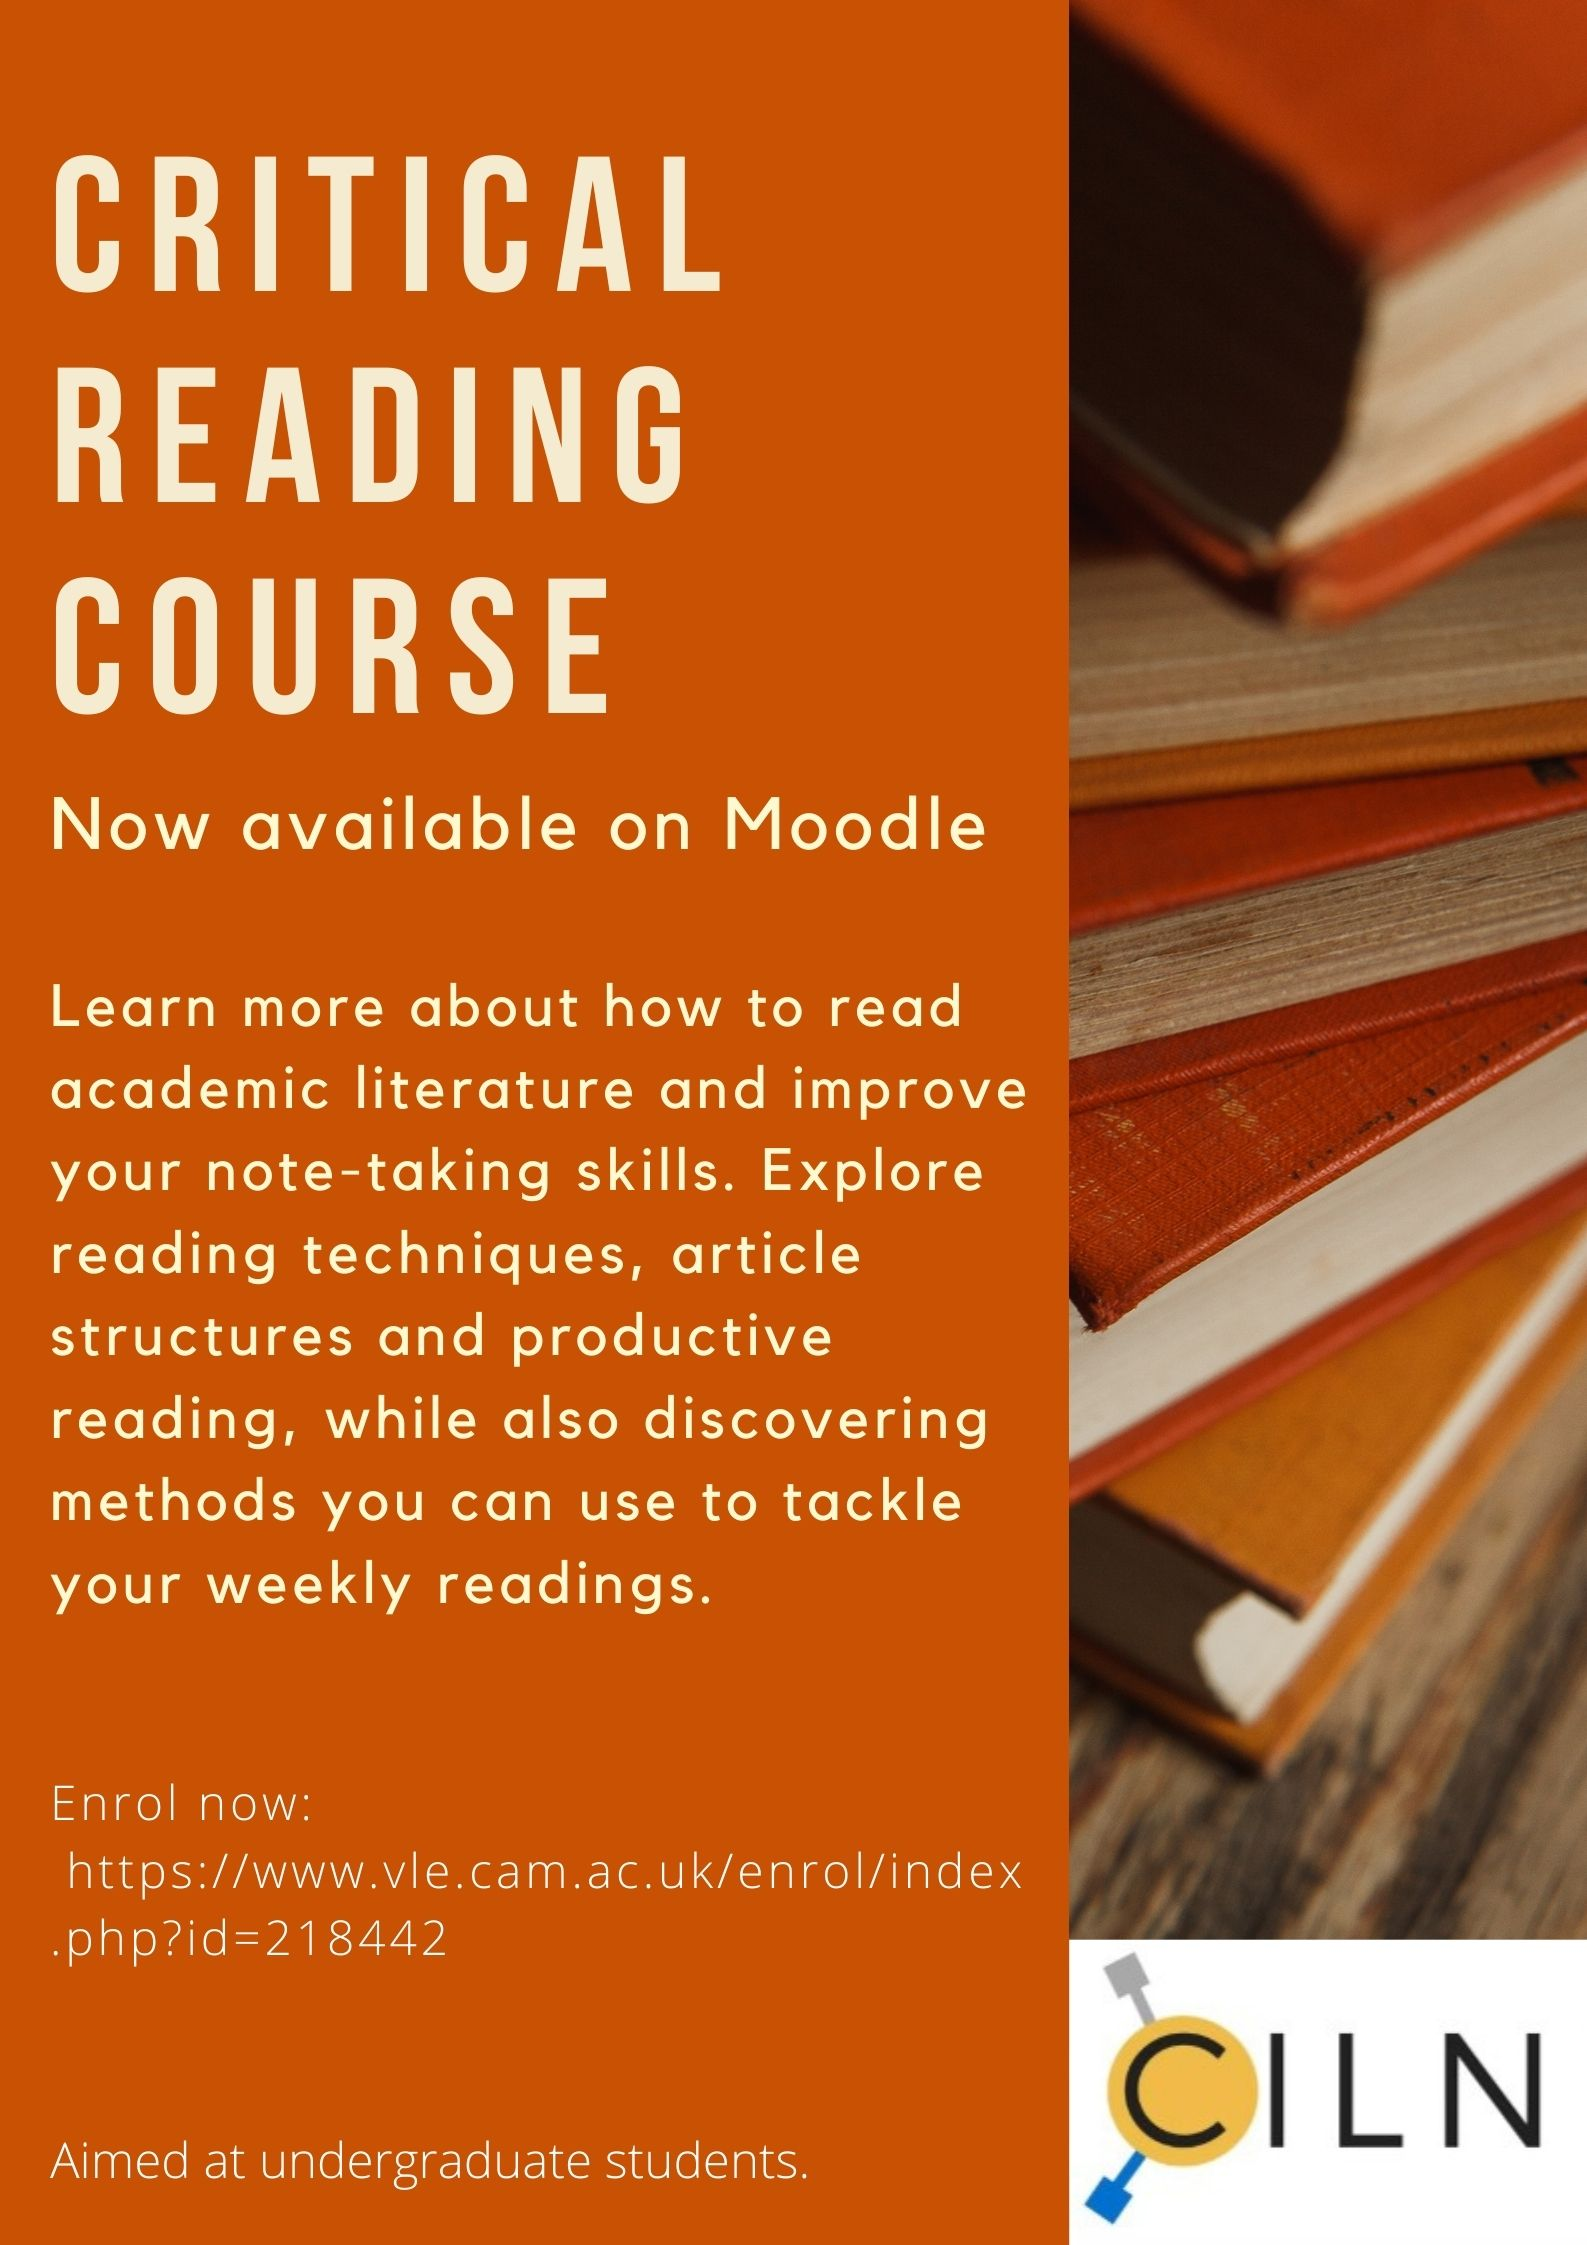 An advert for a Critical Reading course available on Moodle. Click on the image to link to the course on Moodle